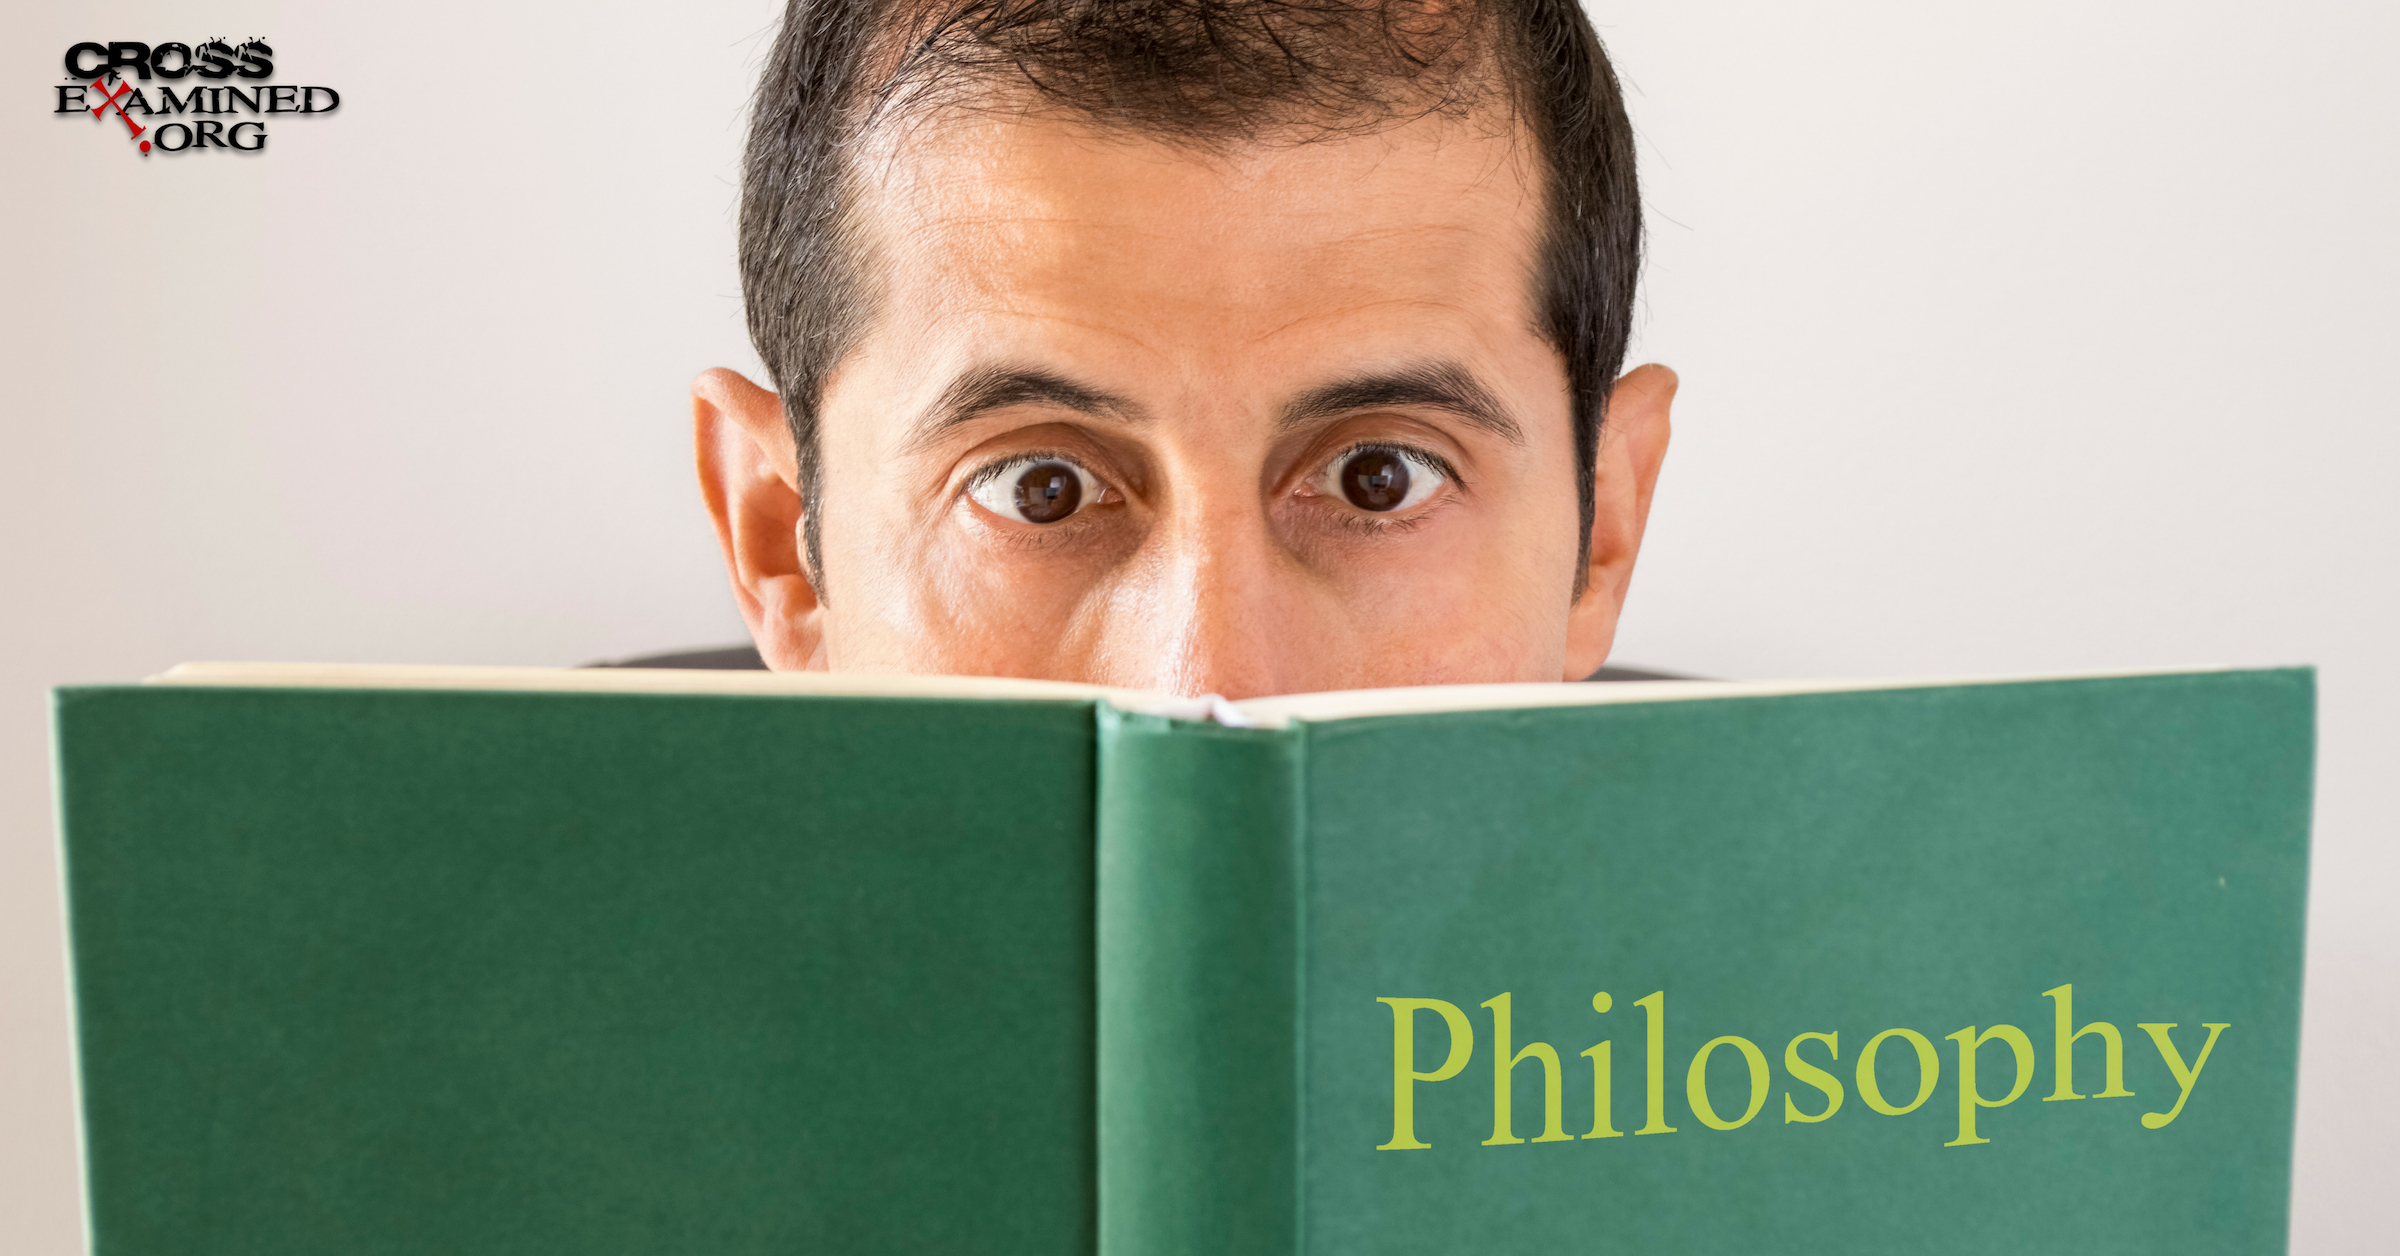 Philosophy Is for Everyone